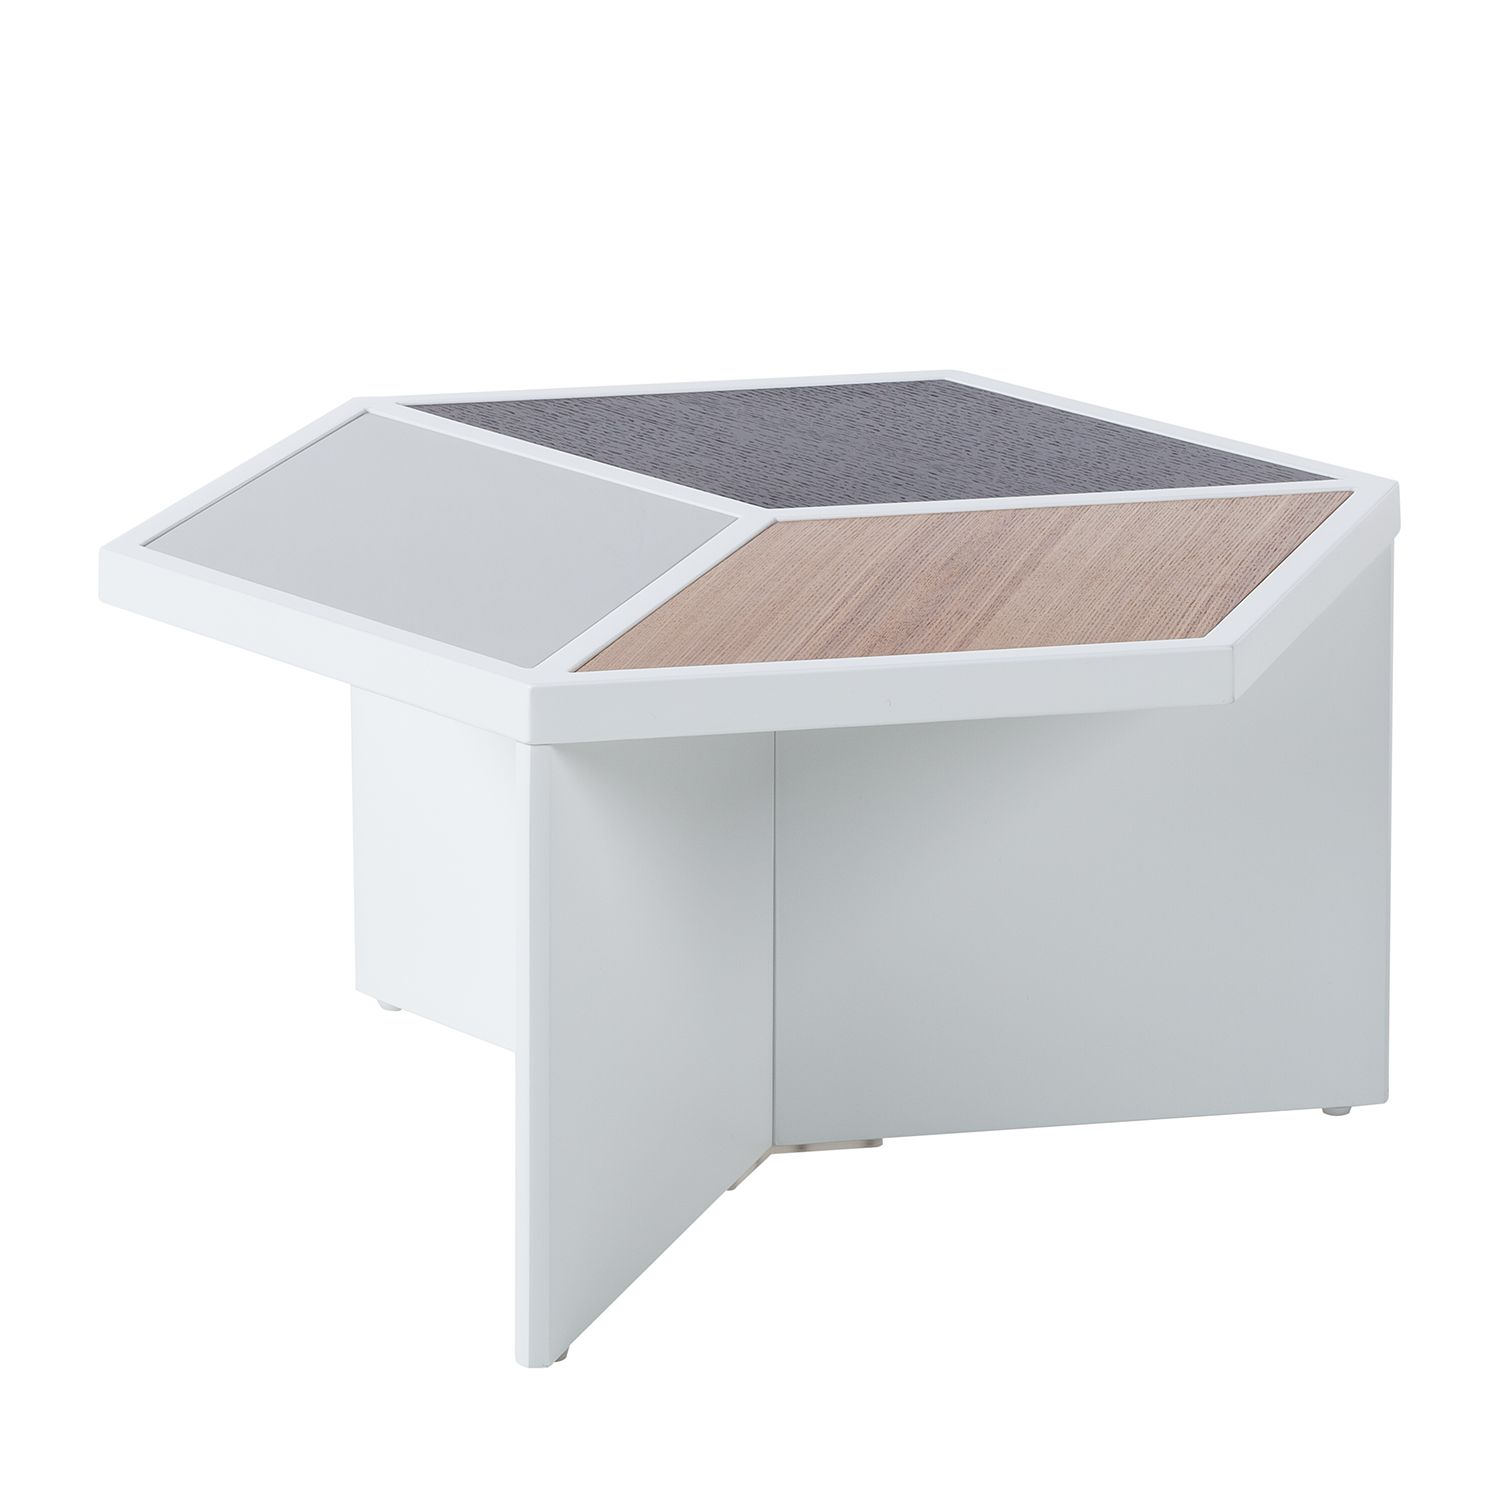 Table basse Maina - Multicolore, Fredriks